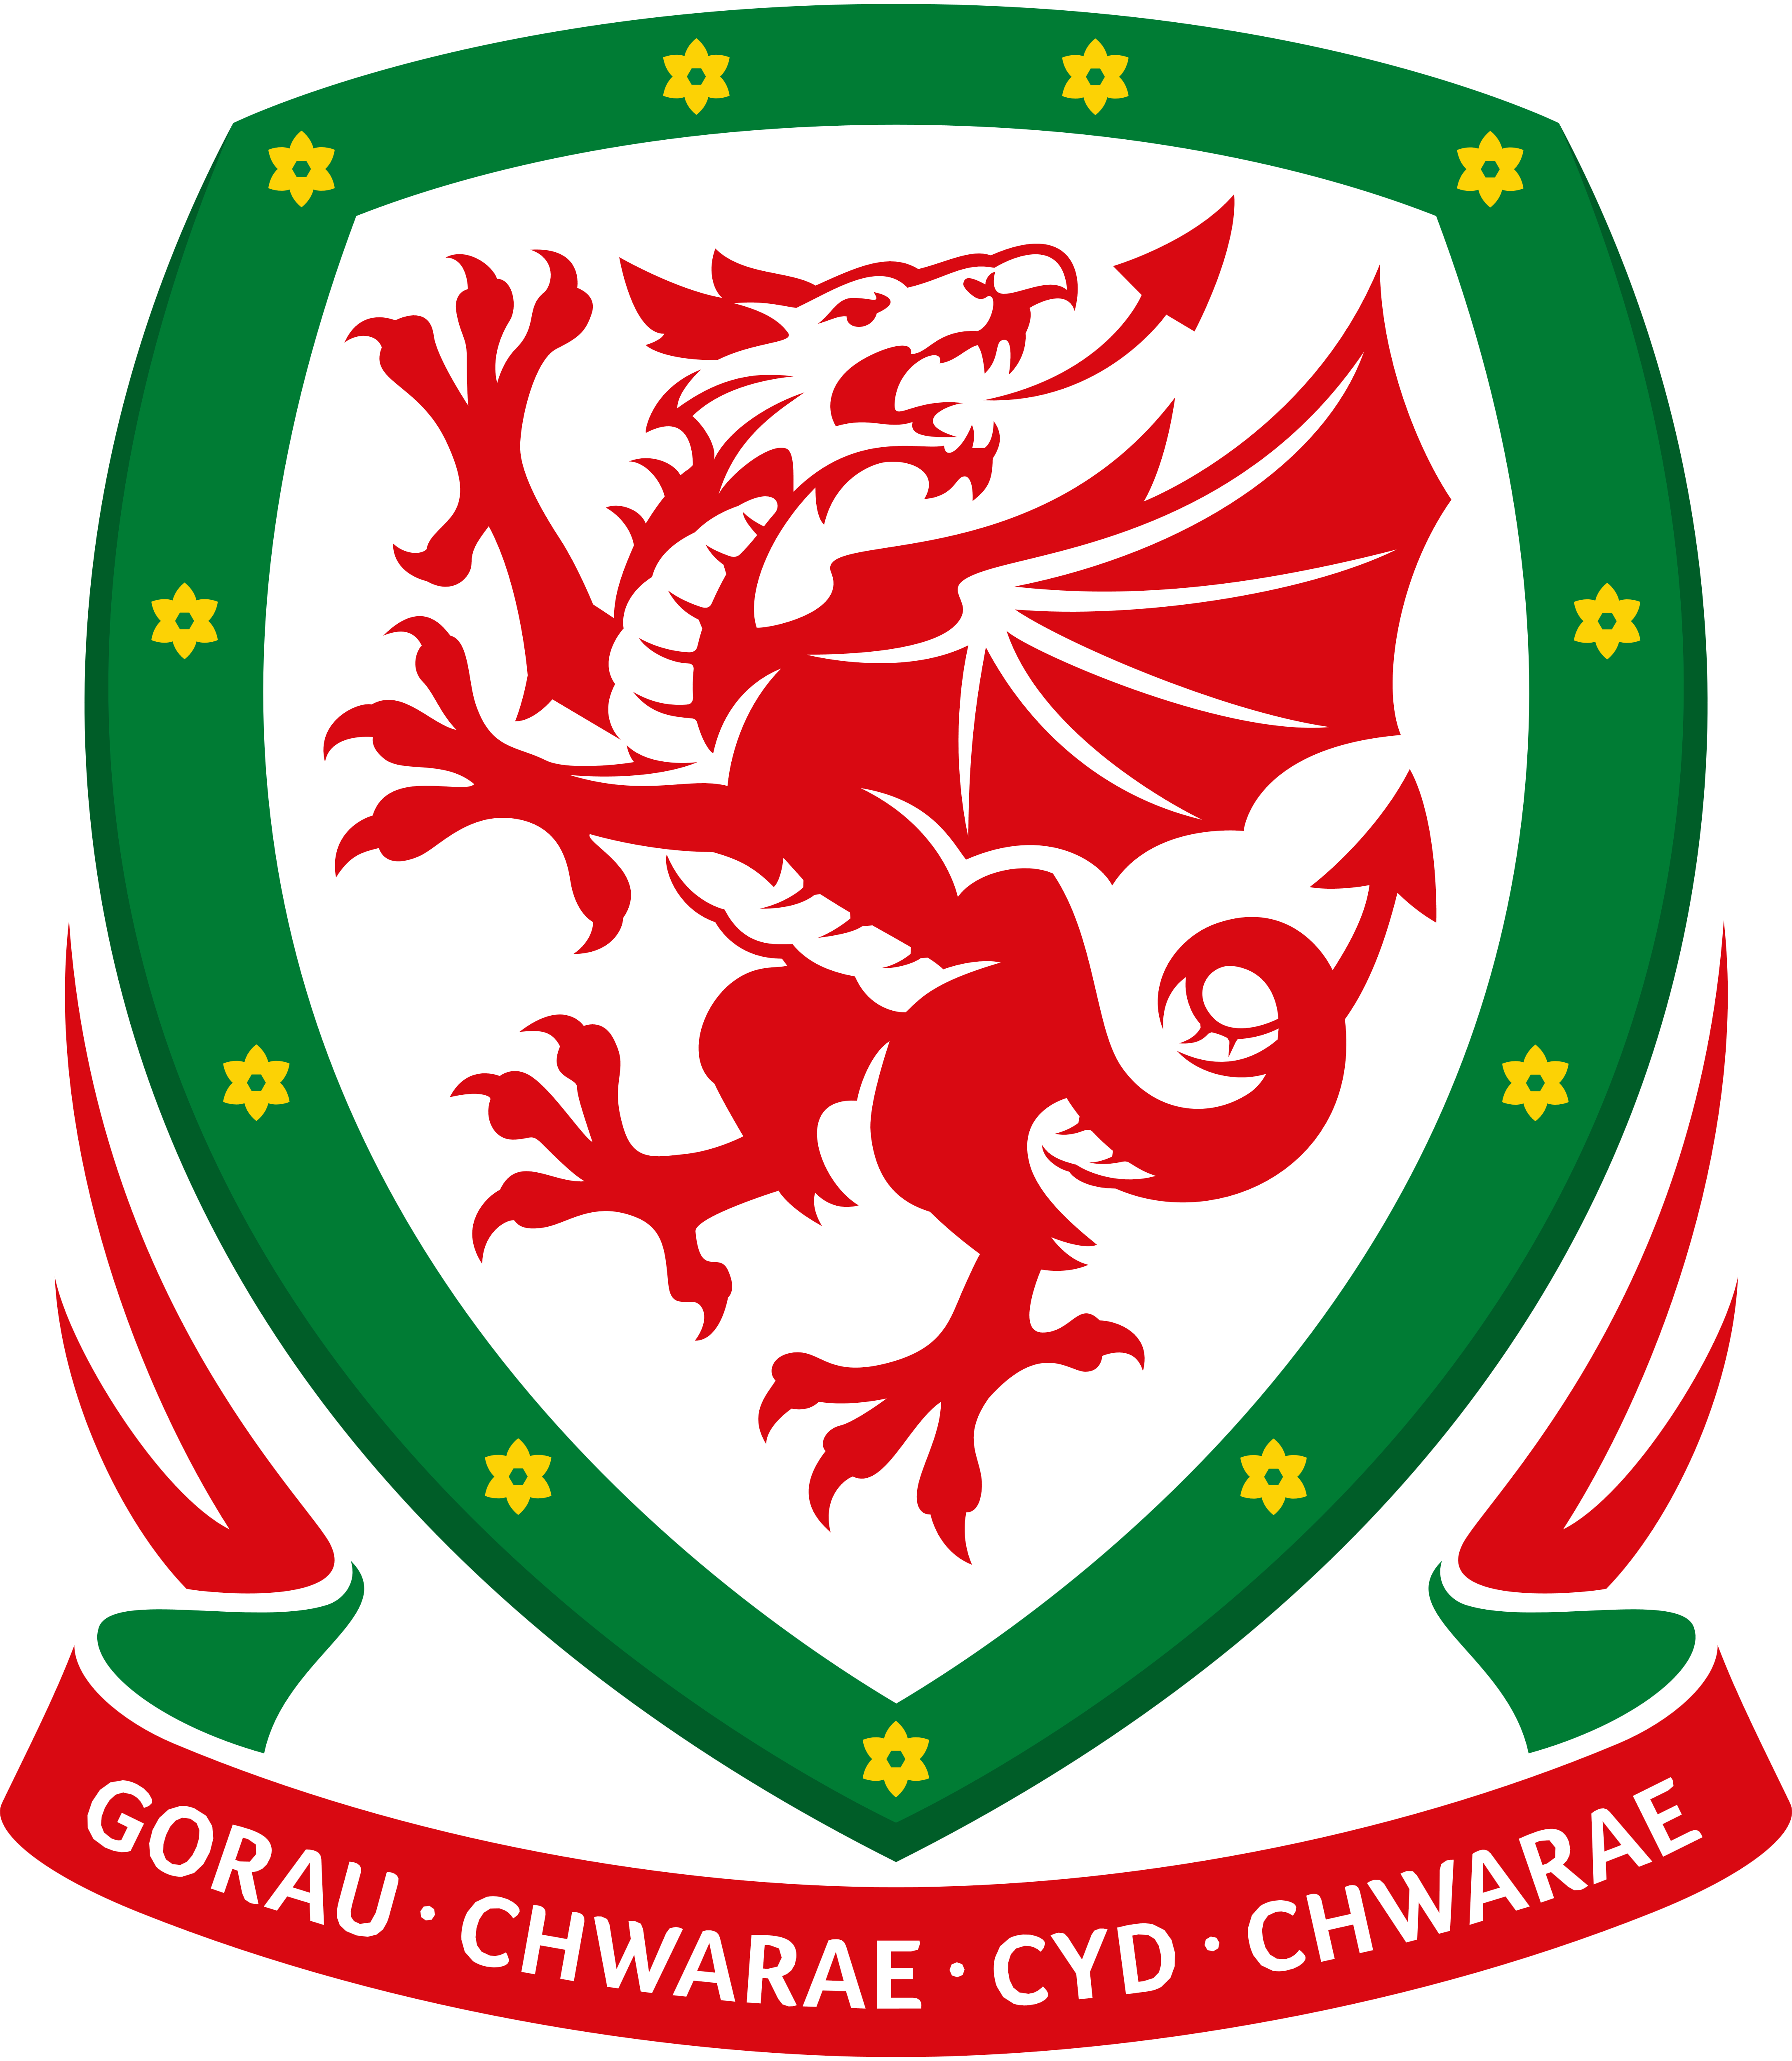 Albania National Football Team Png - Welsh National Football Team, Transparent background PNG HD thumbnail